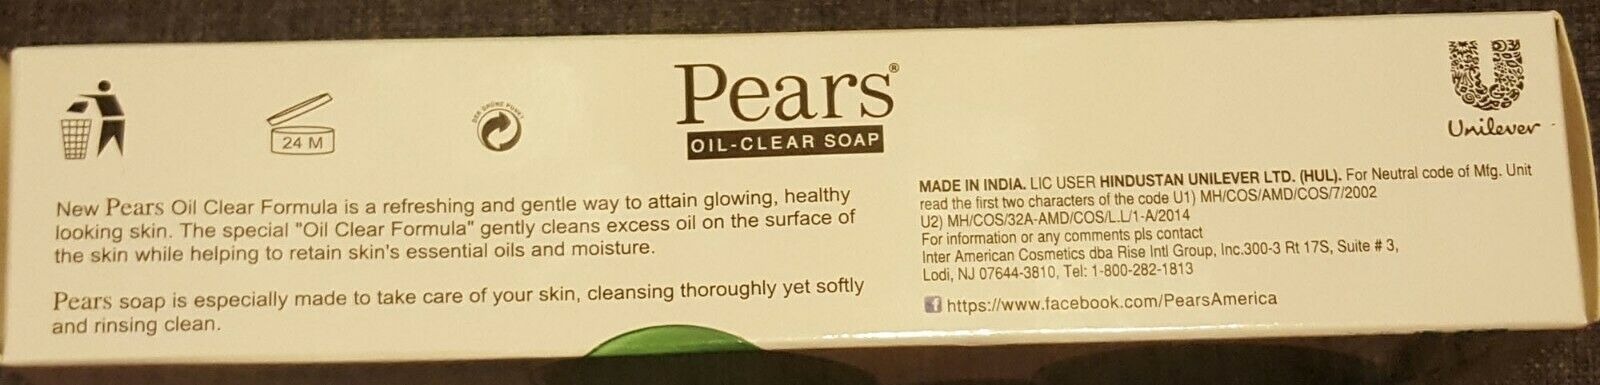 Pears Oil Clear Soap with Lemon Flower Extract 4.4 oz (Family Pack of 3 bars)